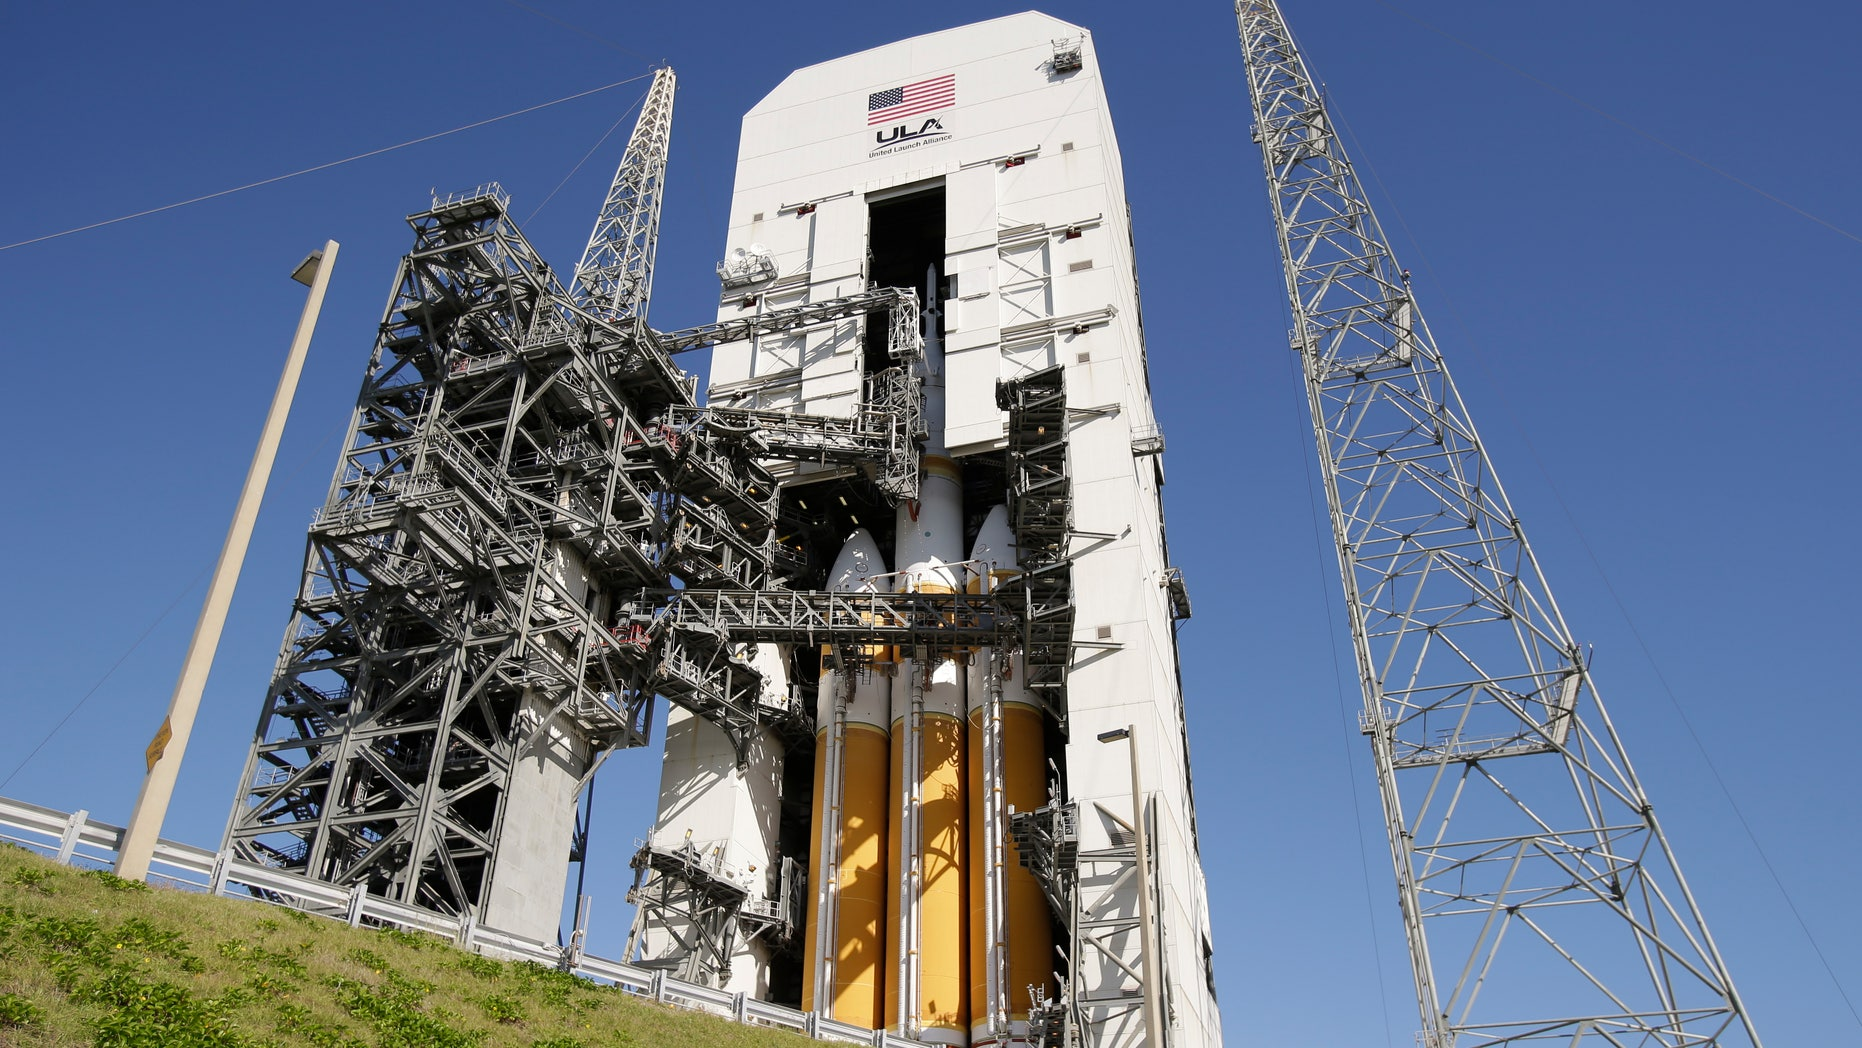 Dec. 3, 2014: The NASA Orion space capsule is seen atop a Delta IV rocket ready for a test launch at the Cape Canaveral Air Force Station.